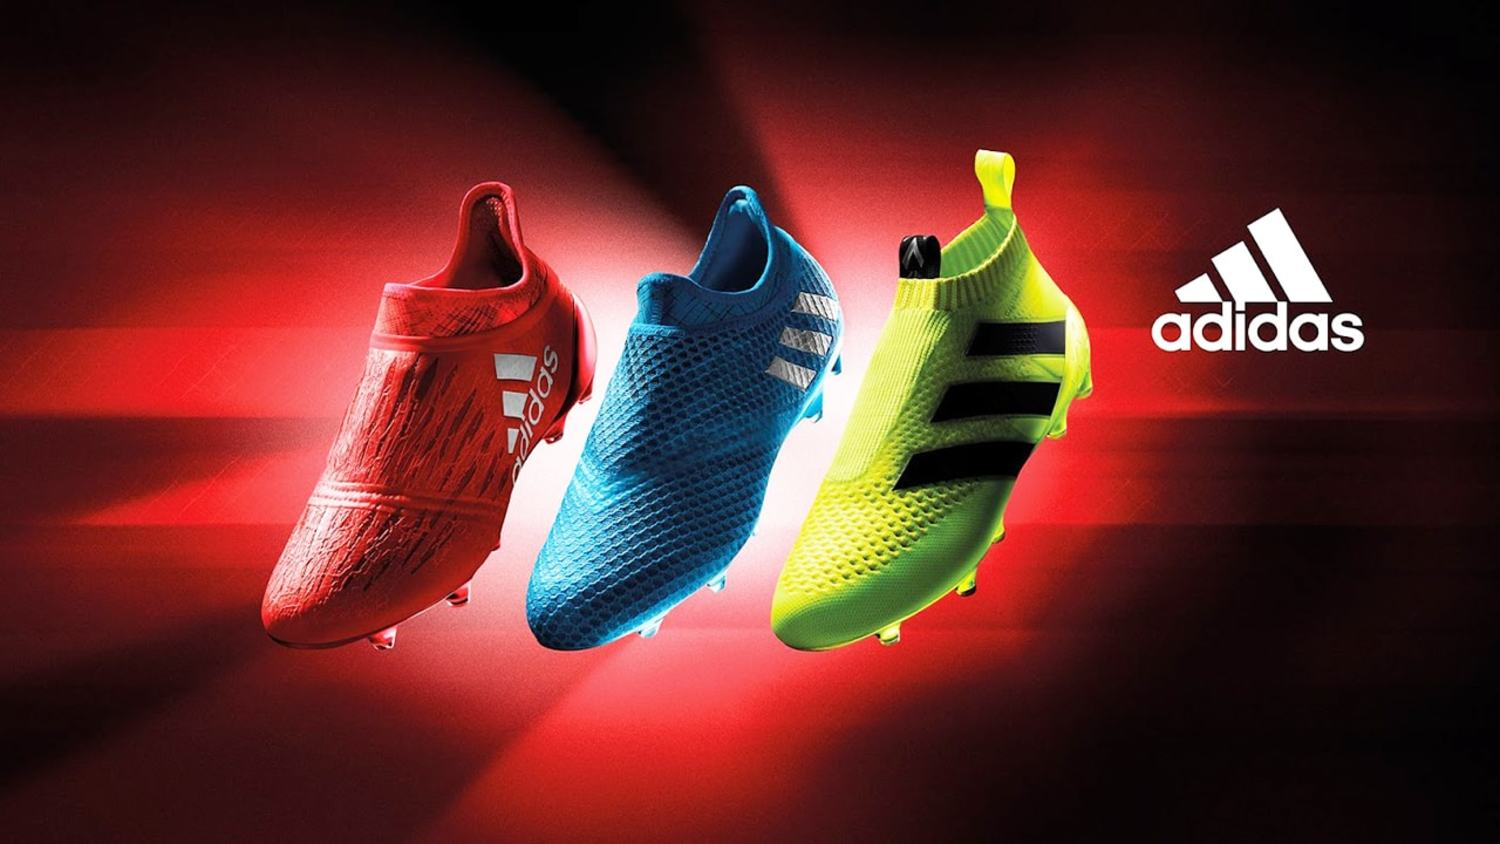 Adidas Release Vibrant 'Speed Of Light' Boot Pack